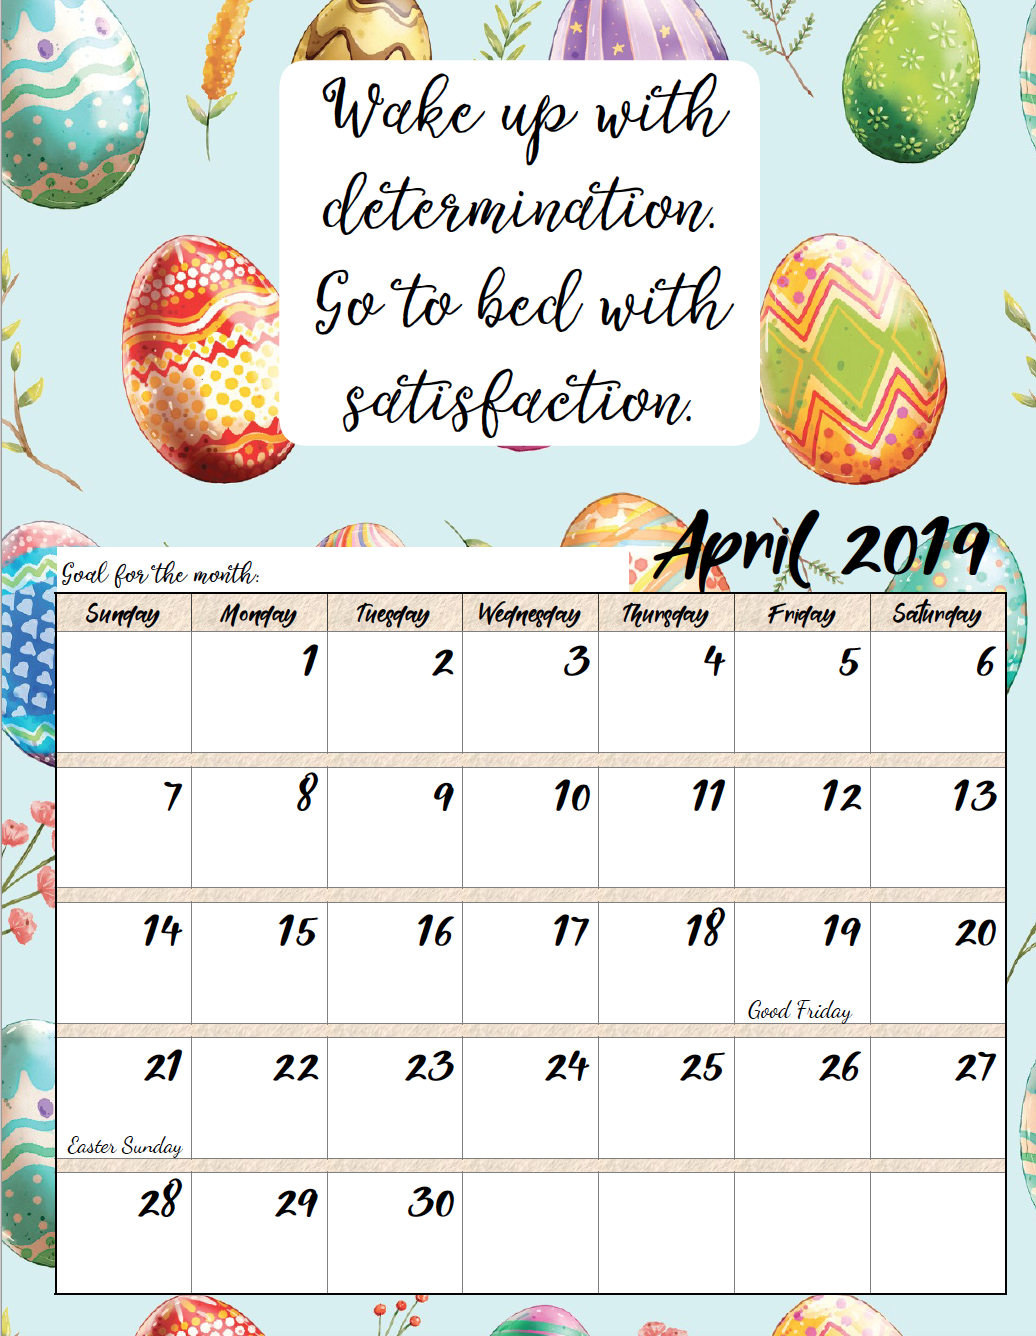 April. FREE Printable 2019 Monthly Motivational Calendars. Space for setting goals, different motivational quote each month, holidays marked. #free #freeprintable #printable #calendar #motivation